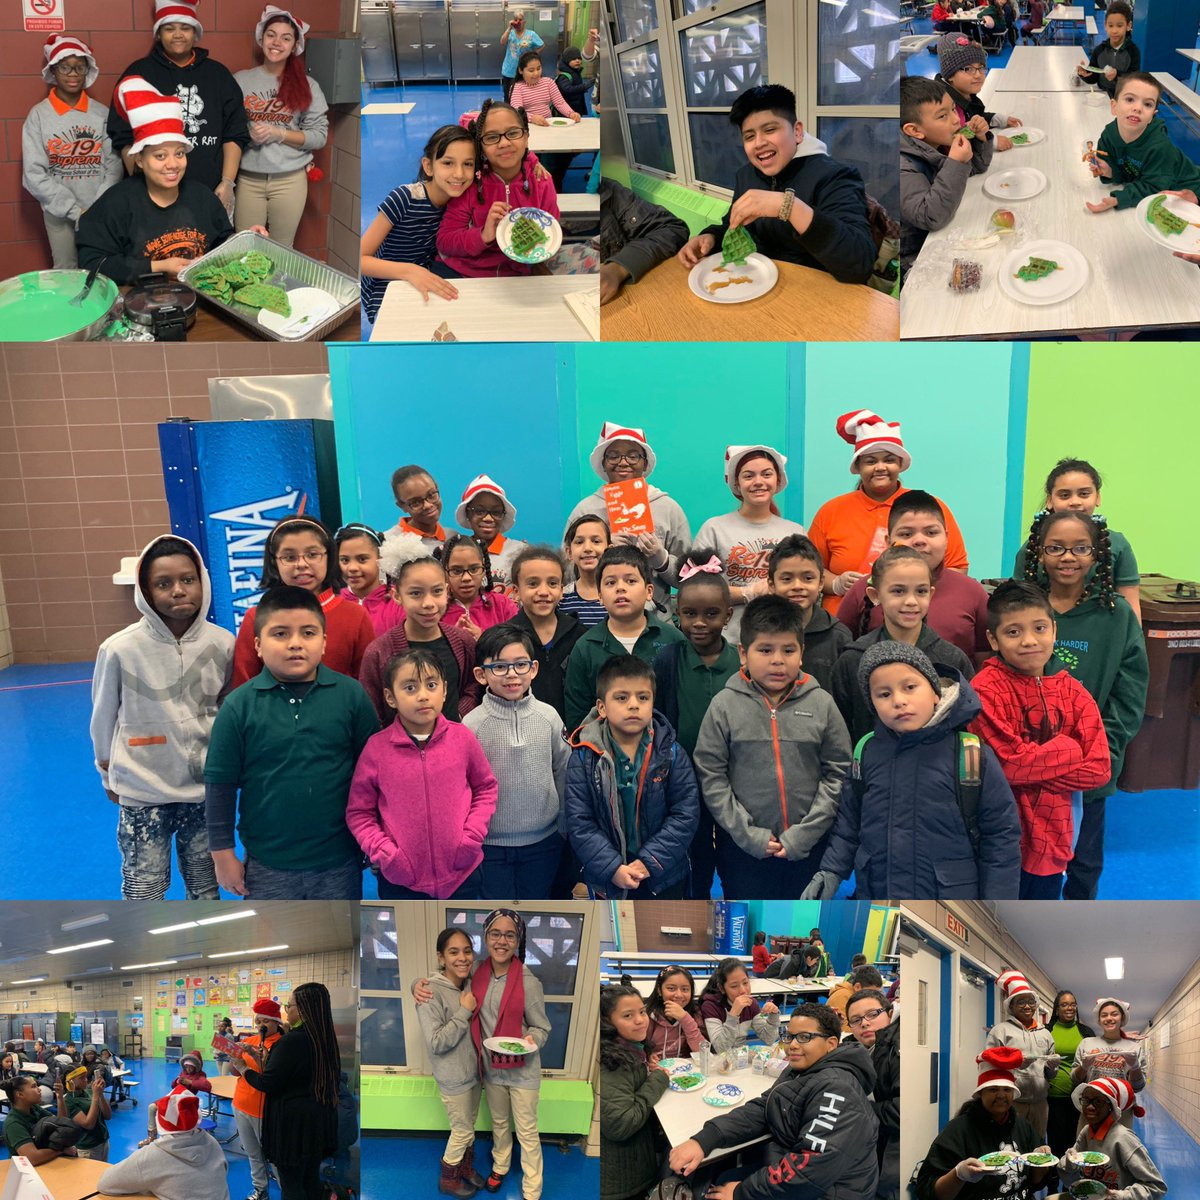 This morning was full of #rsapassion & #pacapride as we celebrated #drsuessbirthday #seniors read aloud to @ps155D4 students and served them #greenwaffles for breakfast #unityinthecommunity #wowwaffles #greeneggsandham #happybirthdaydrsuess #drsuessday #championsforchildren